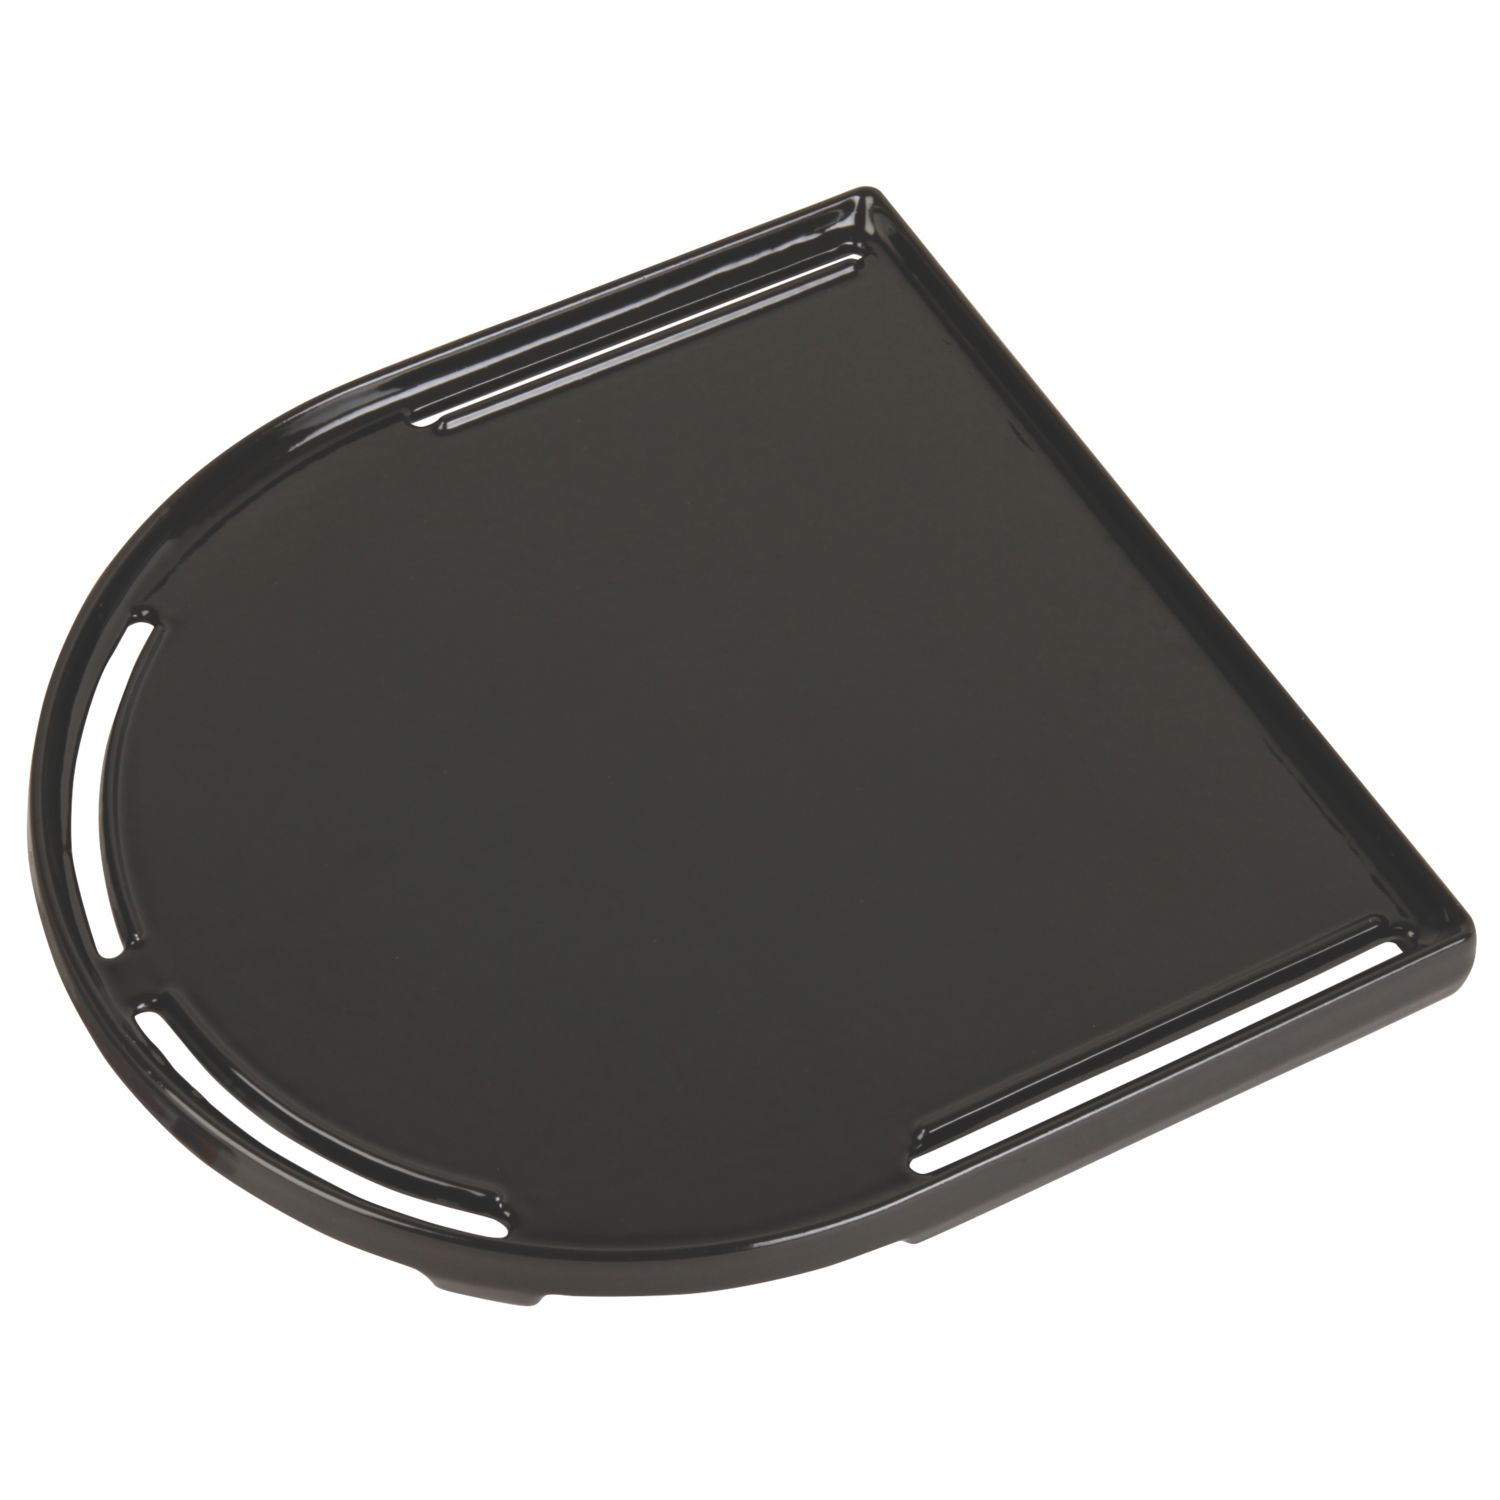 Coleman RoadTrip Swaptop Porcelain Coated Cast Iron Griddle